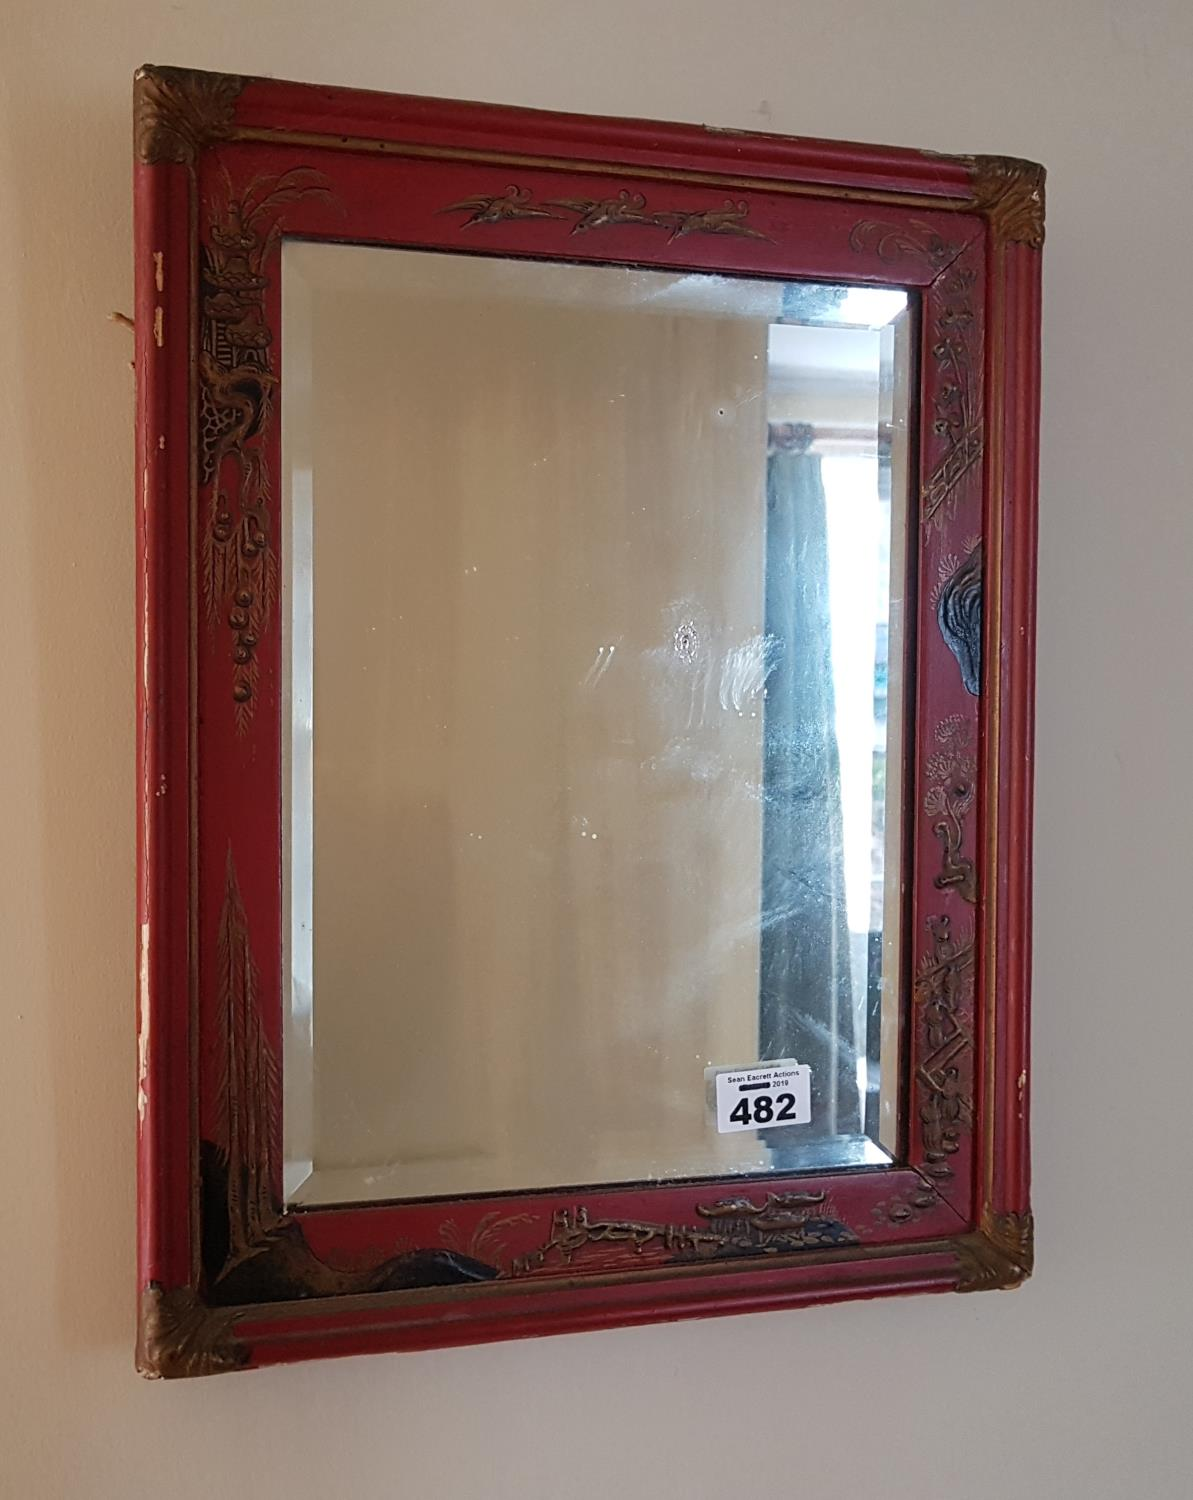 Lot 482 - A late 19th early 20th Century Chinoiserie Mirror.